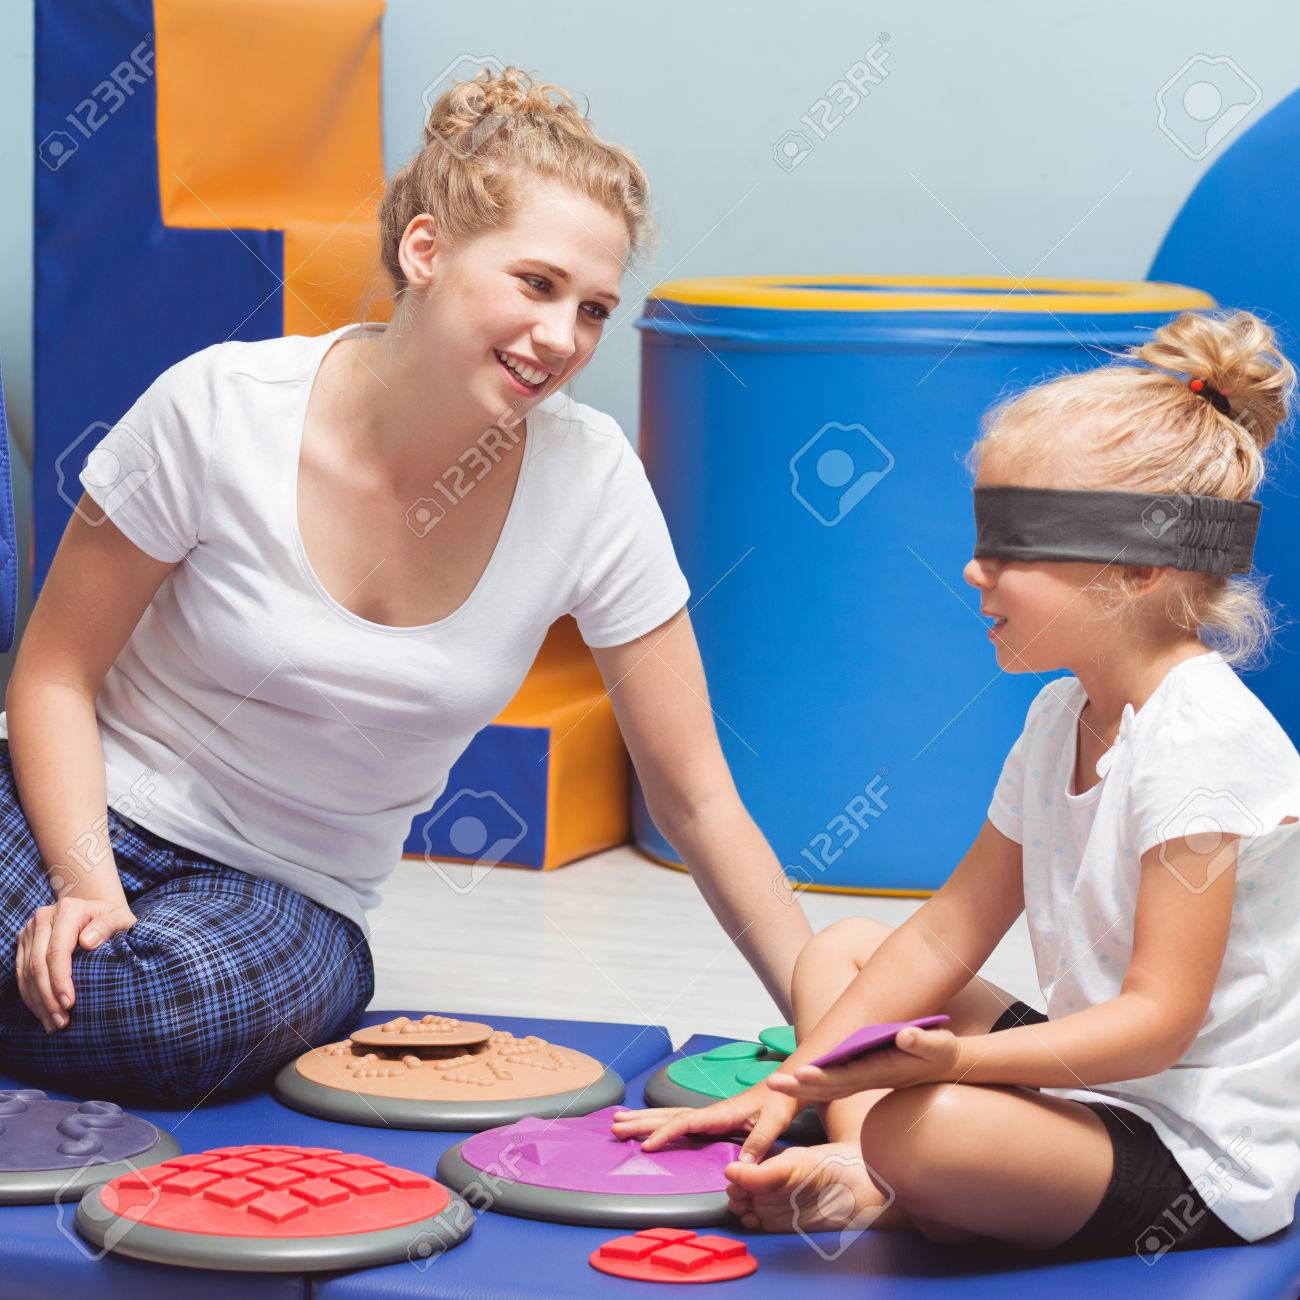 School girl with closed eyes during sensory integration class with therapist - 70964196